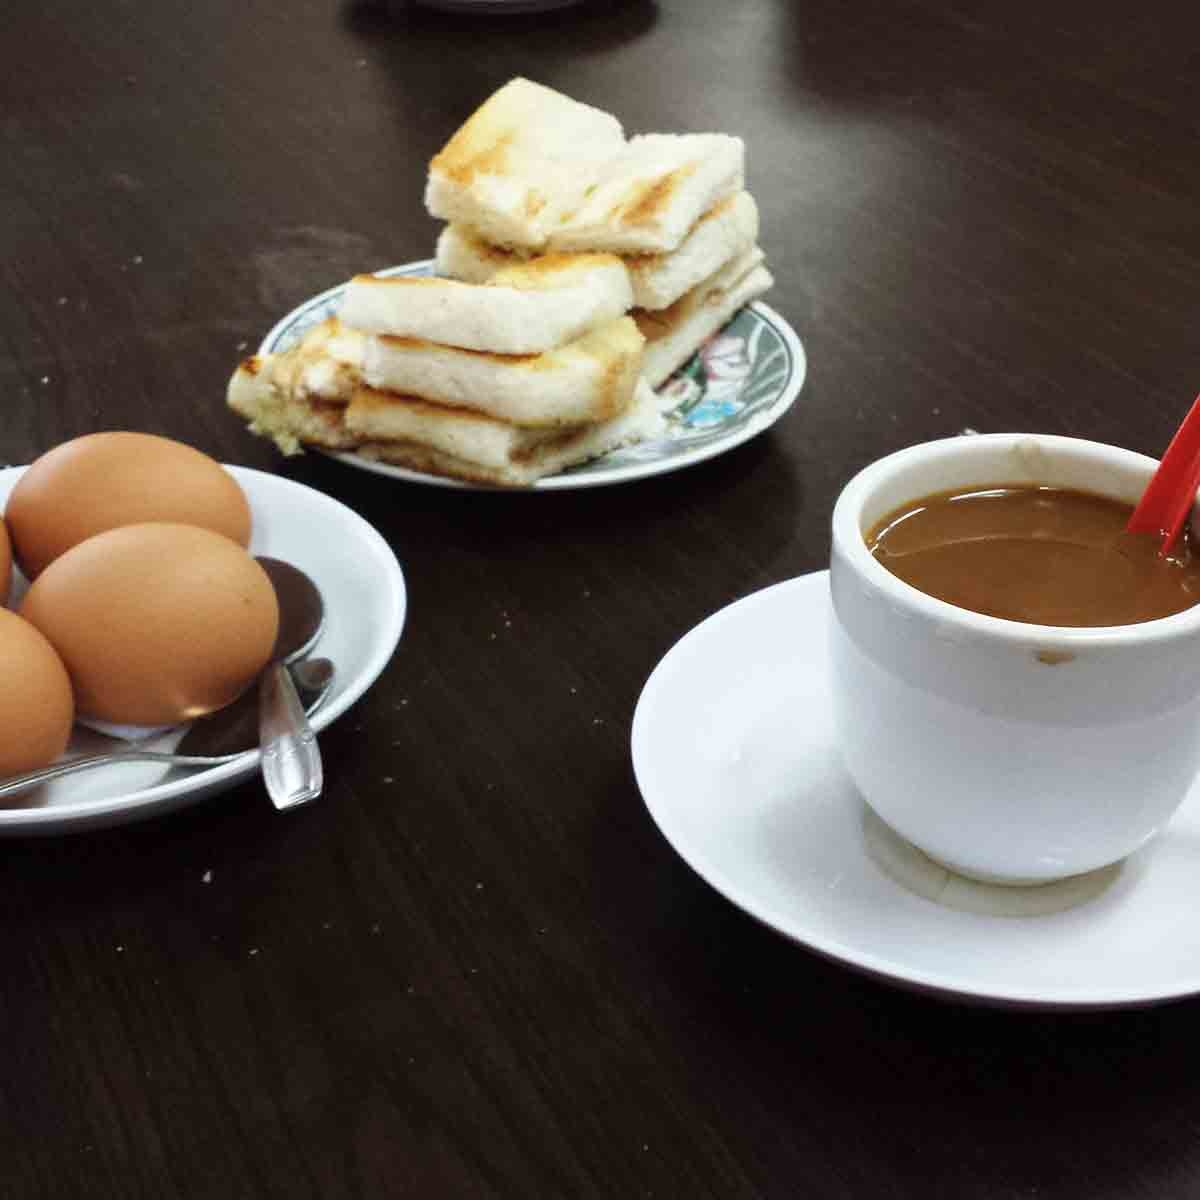 A plat of kaya toast strips, a plate with five soft-boiled eggs, a saucer and cup with coffee and cream and an odd red plastic spoon.